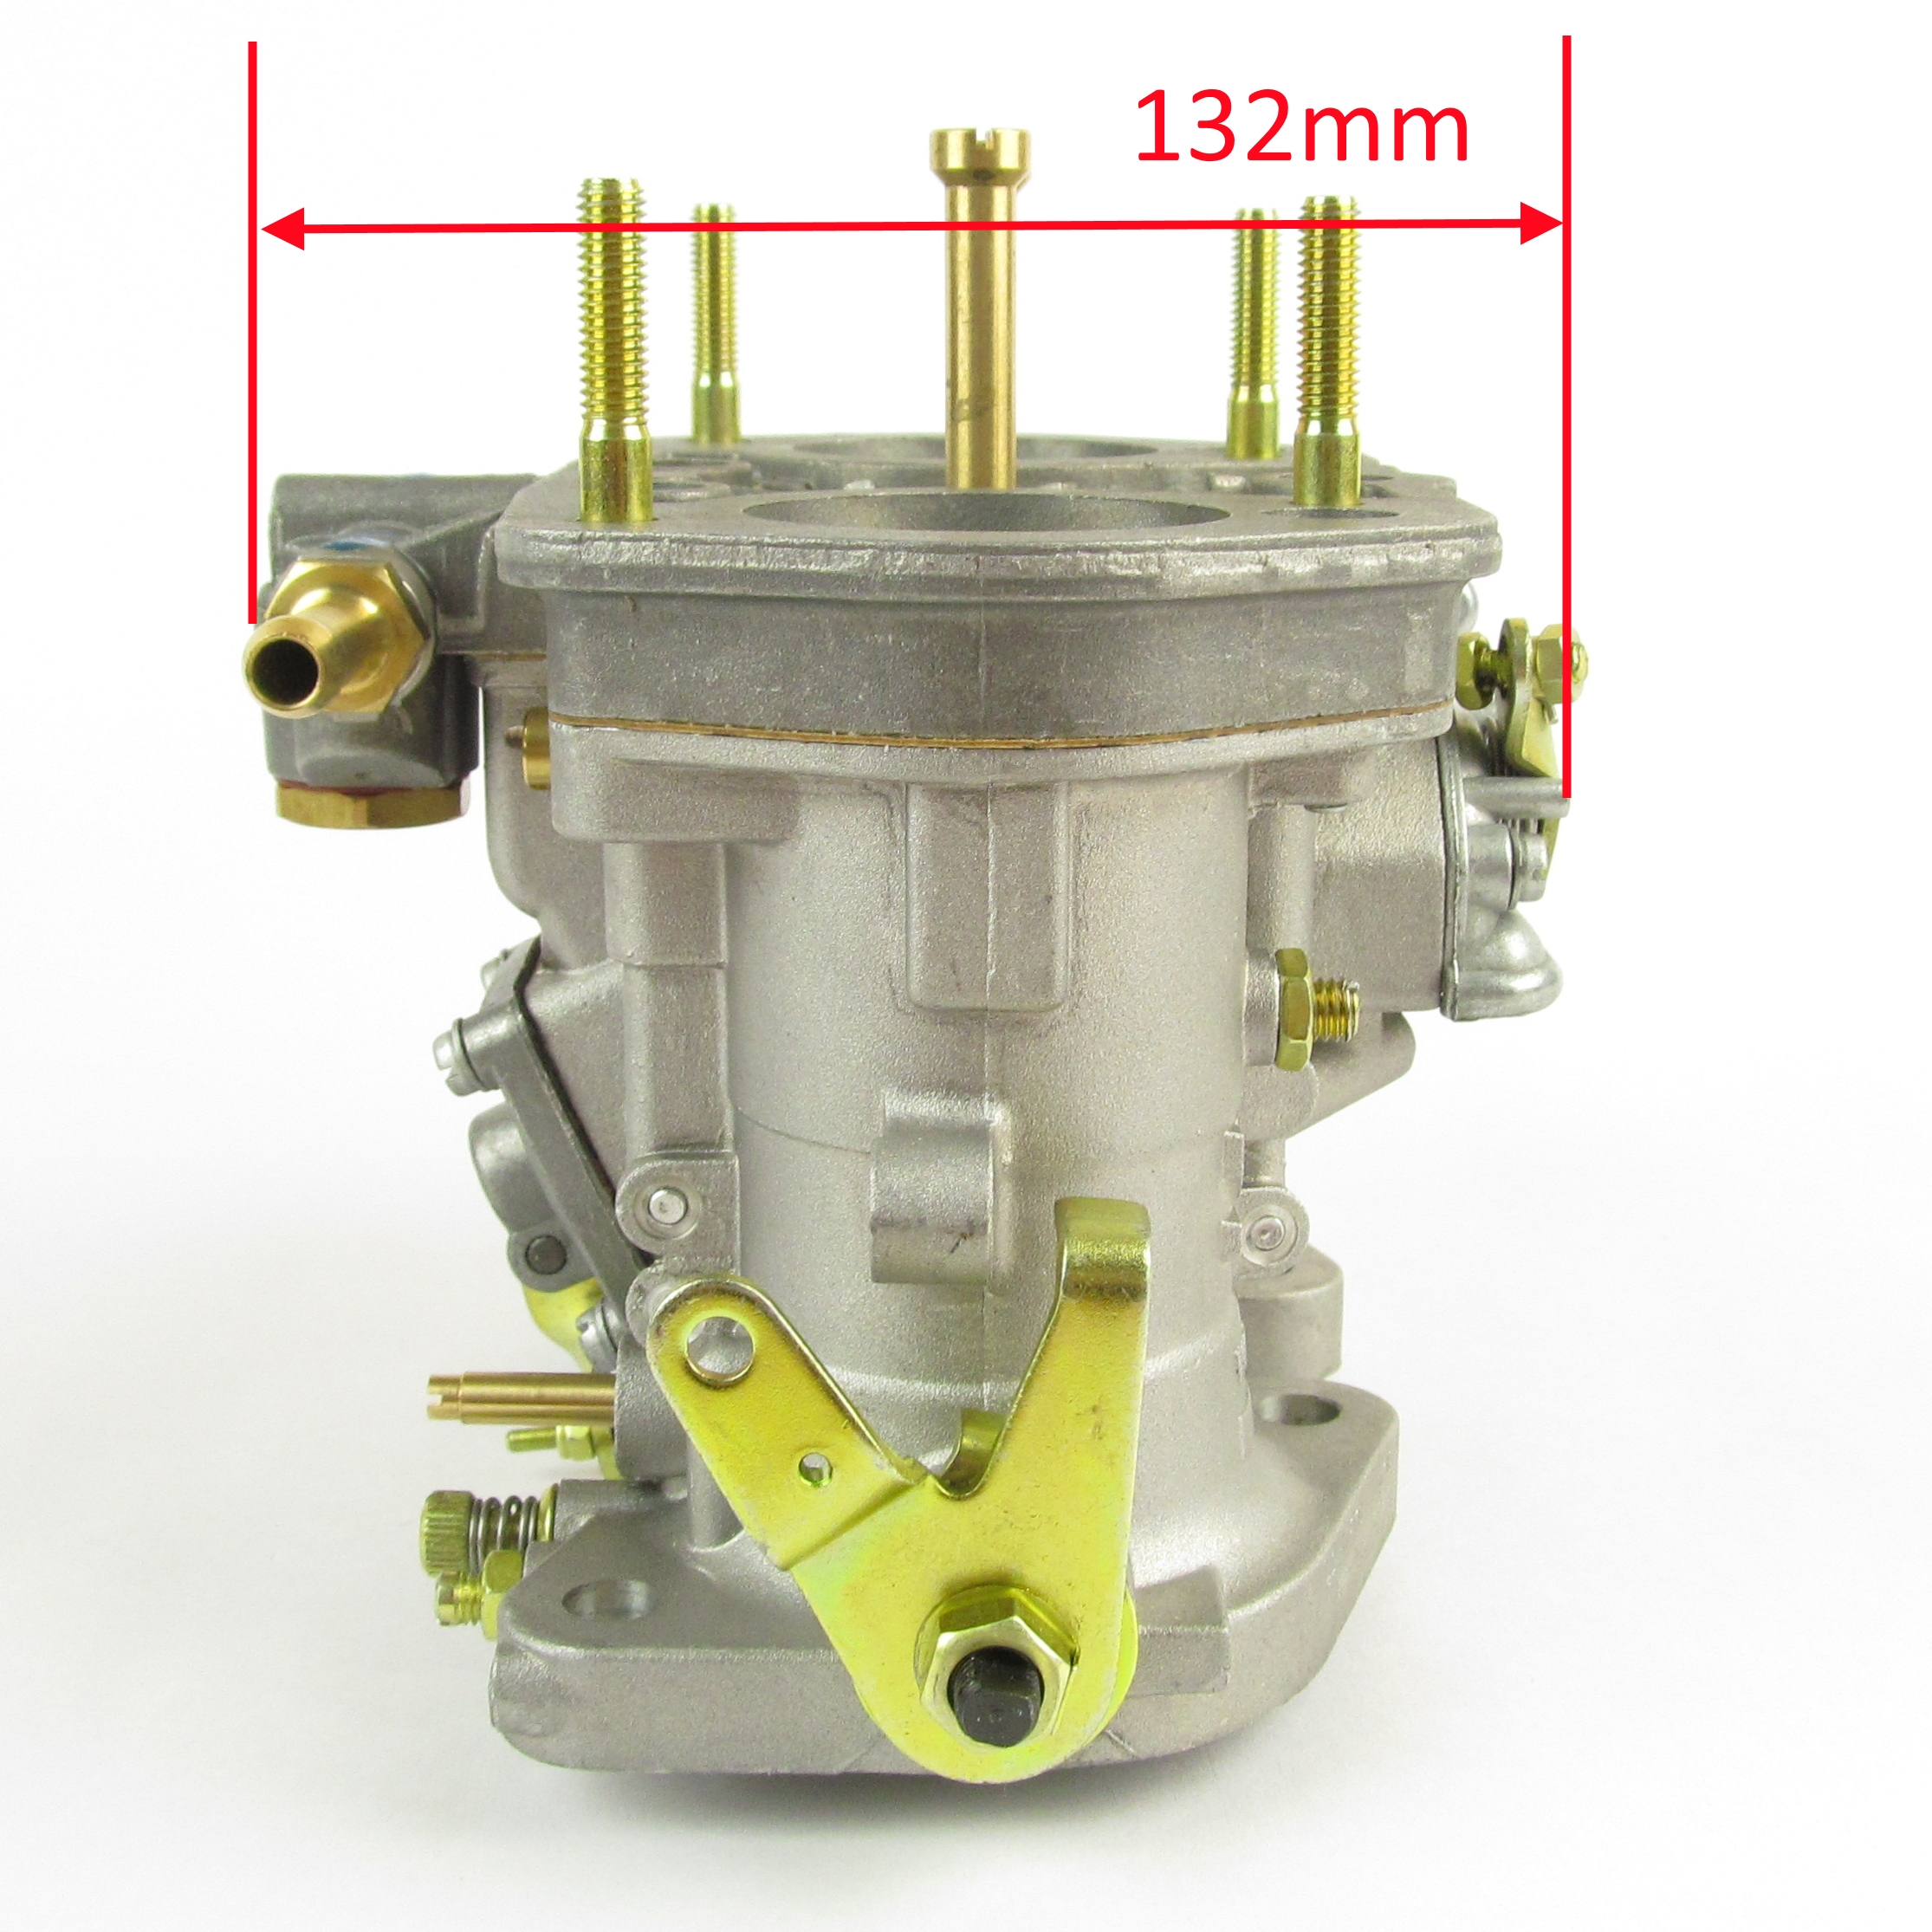 WEBER 44 IDF TWIN CARB FIAT / FORD / ROVER / PORSCHE / VW BEETLE / CAMPER ETC ..